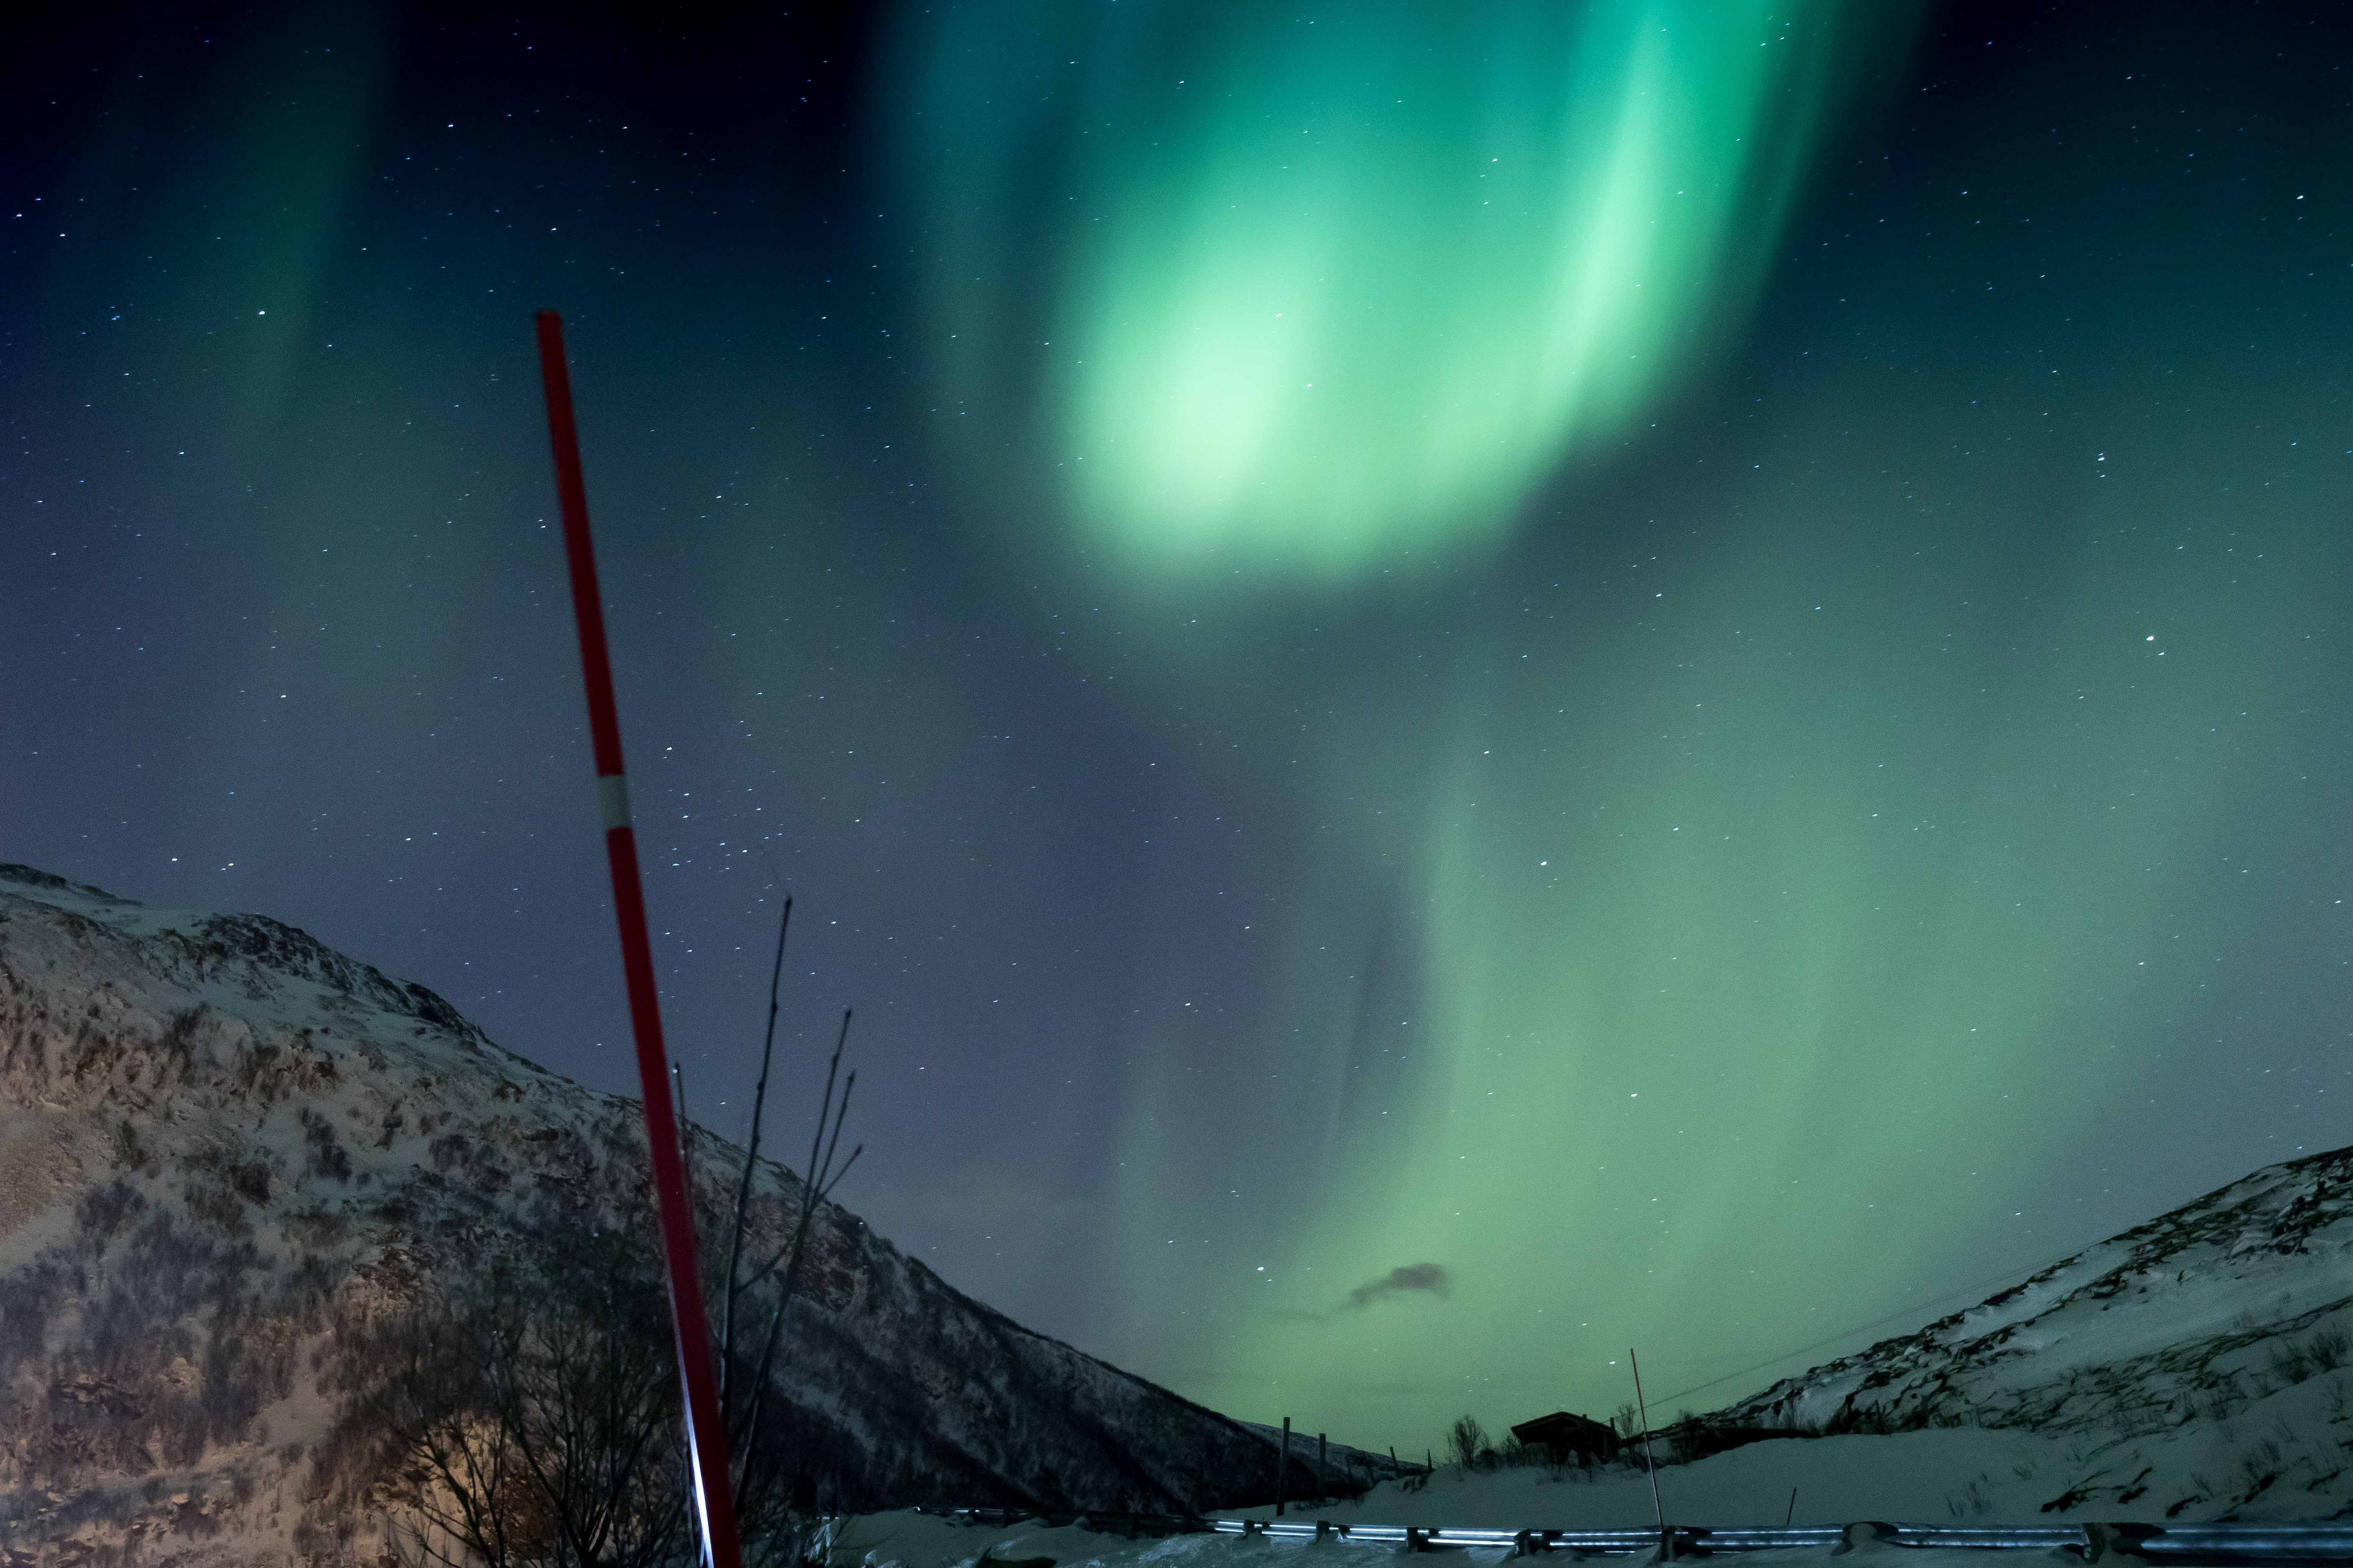 Aurora Borealis about mountain range covered with snow during nighttime